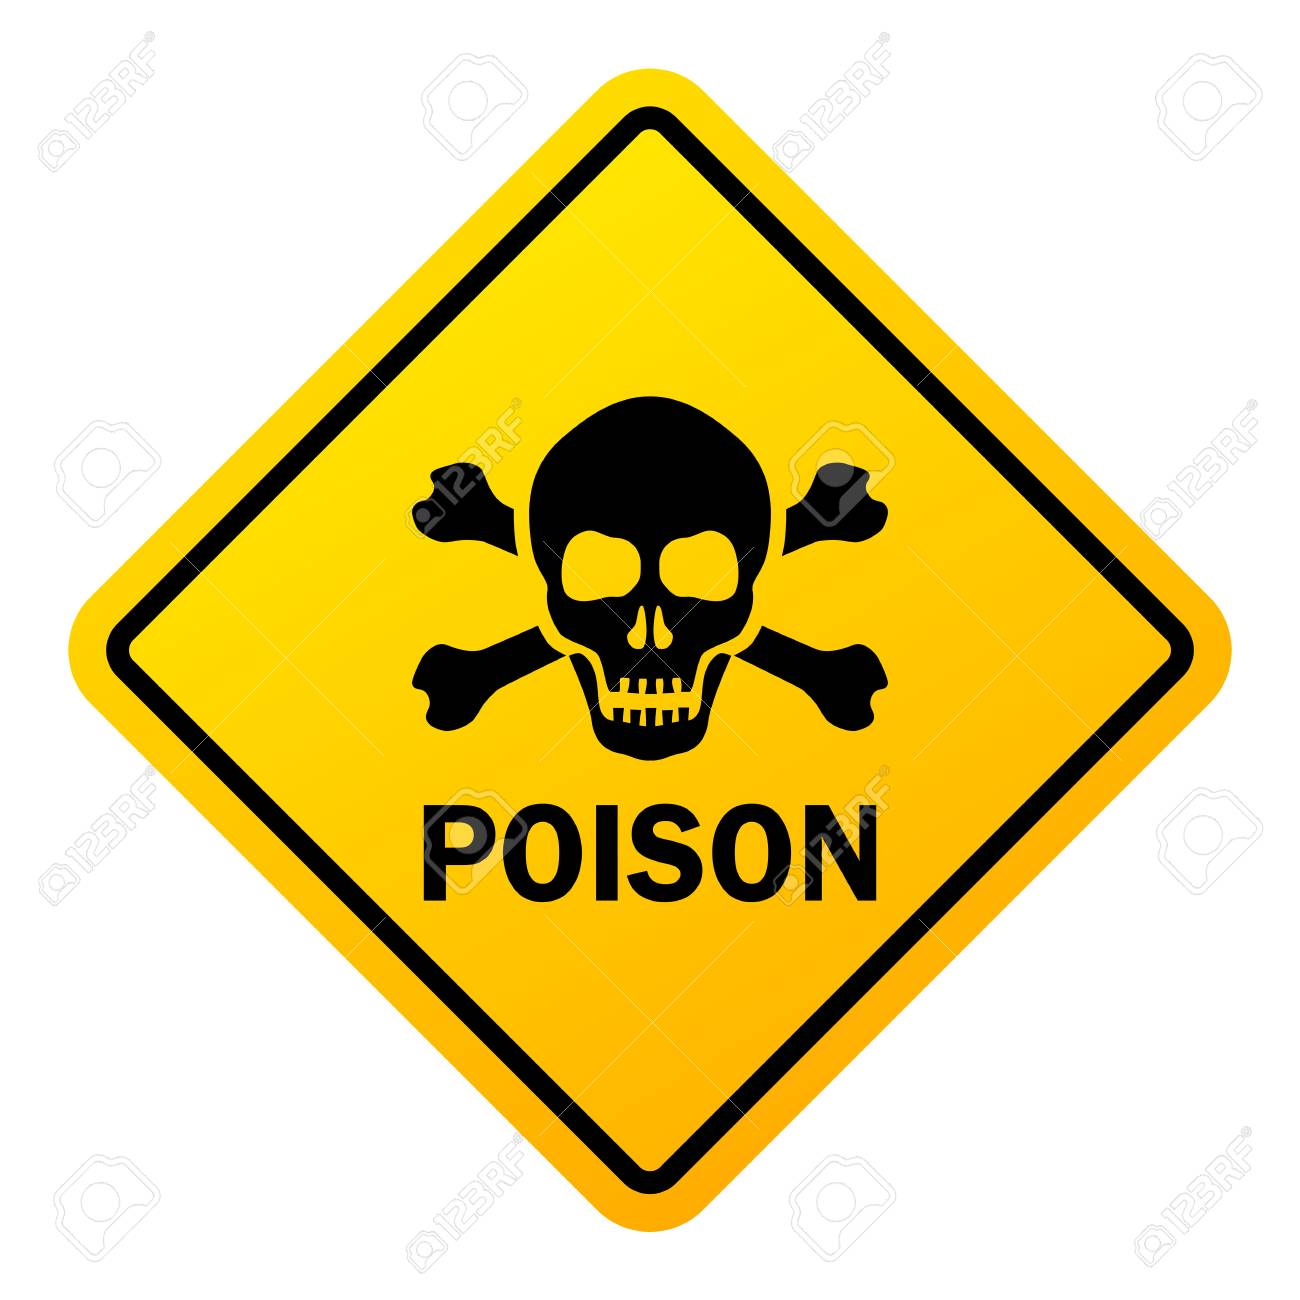 Poison danger warning sign isolated on a white background - 101897229